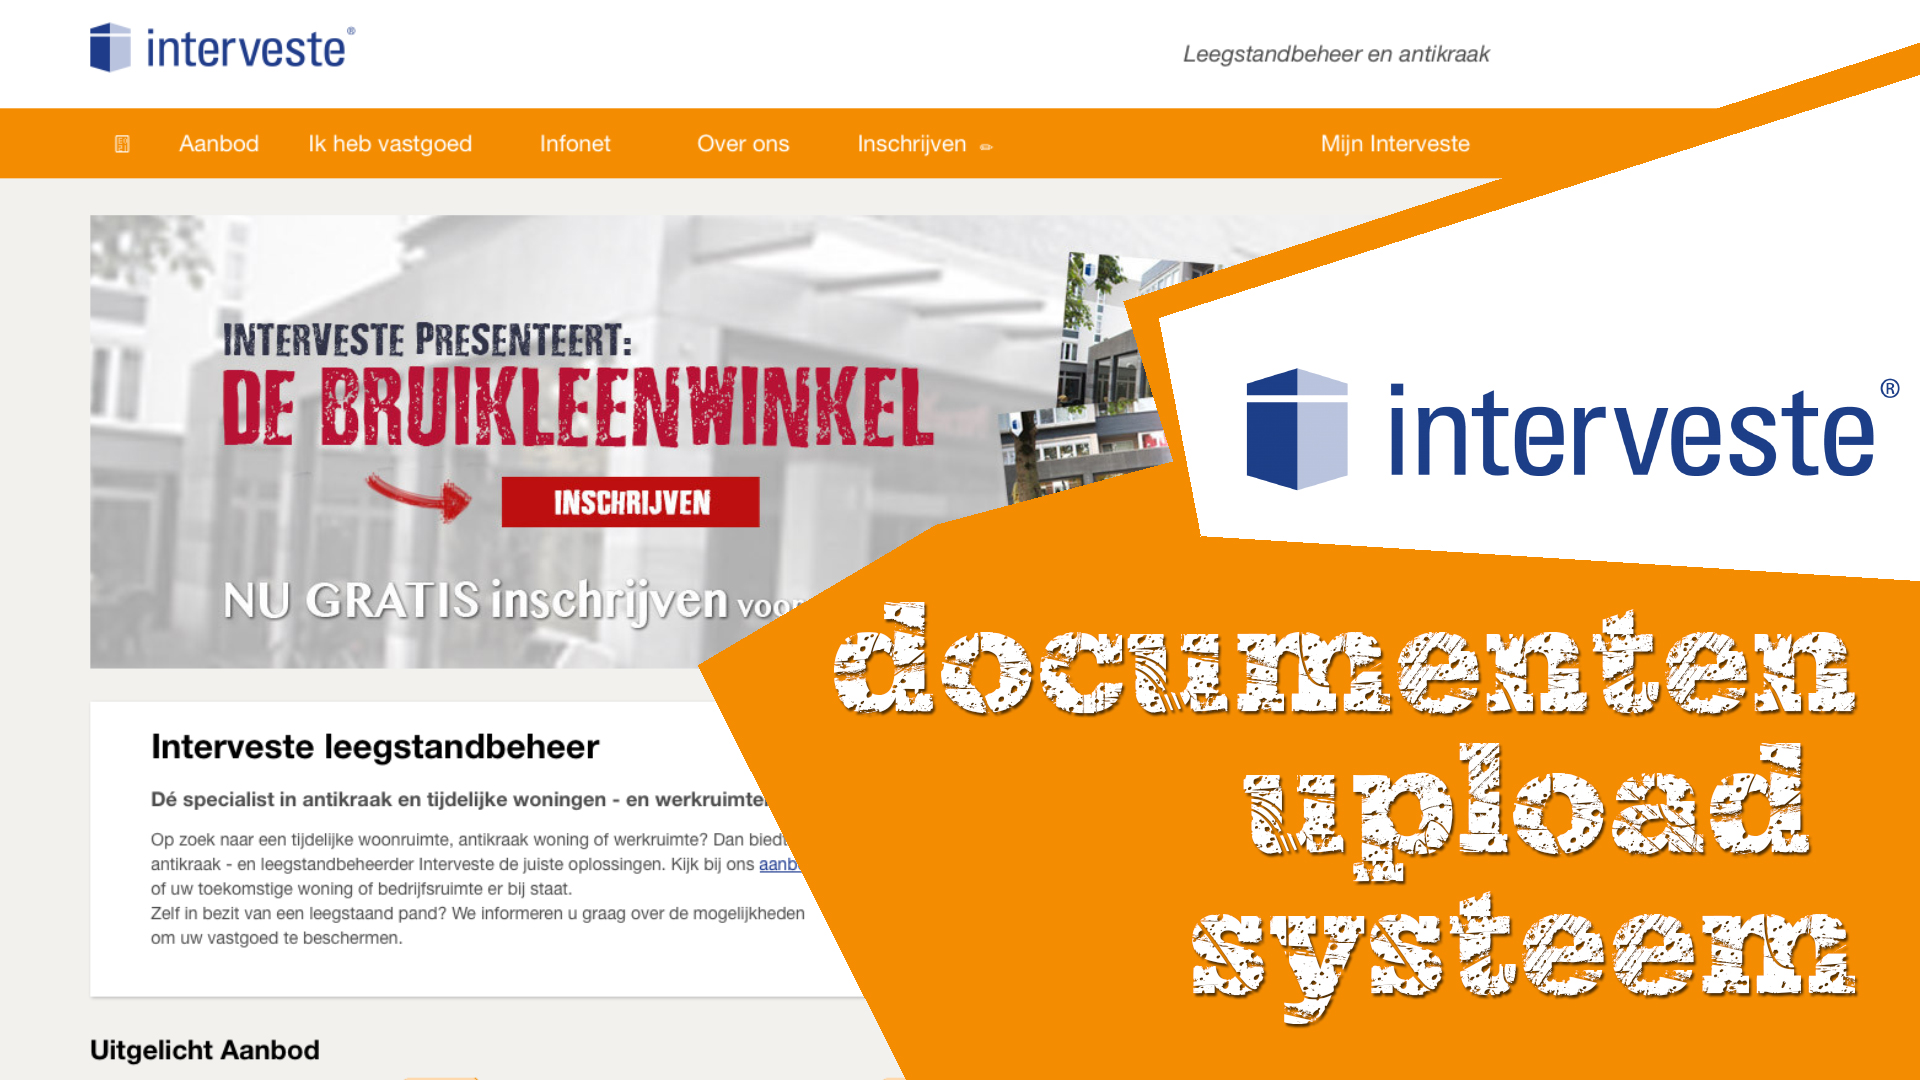 NIEUW! Document upload systeem